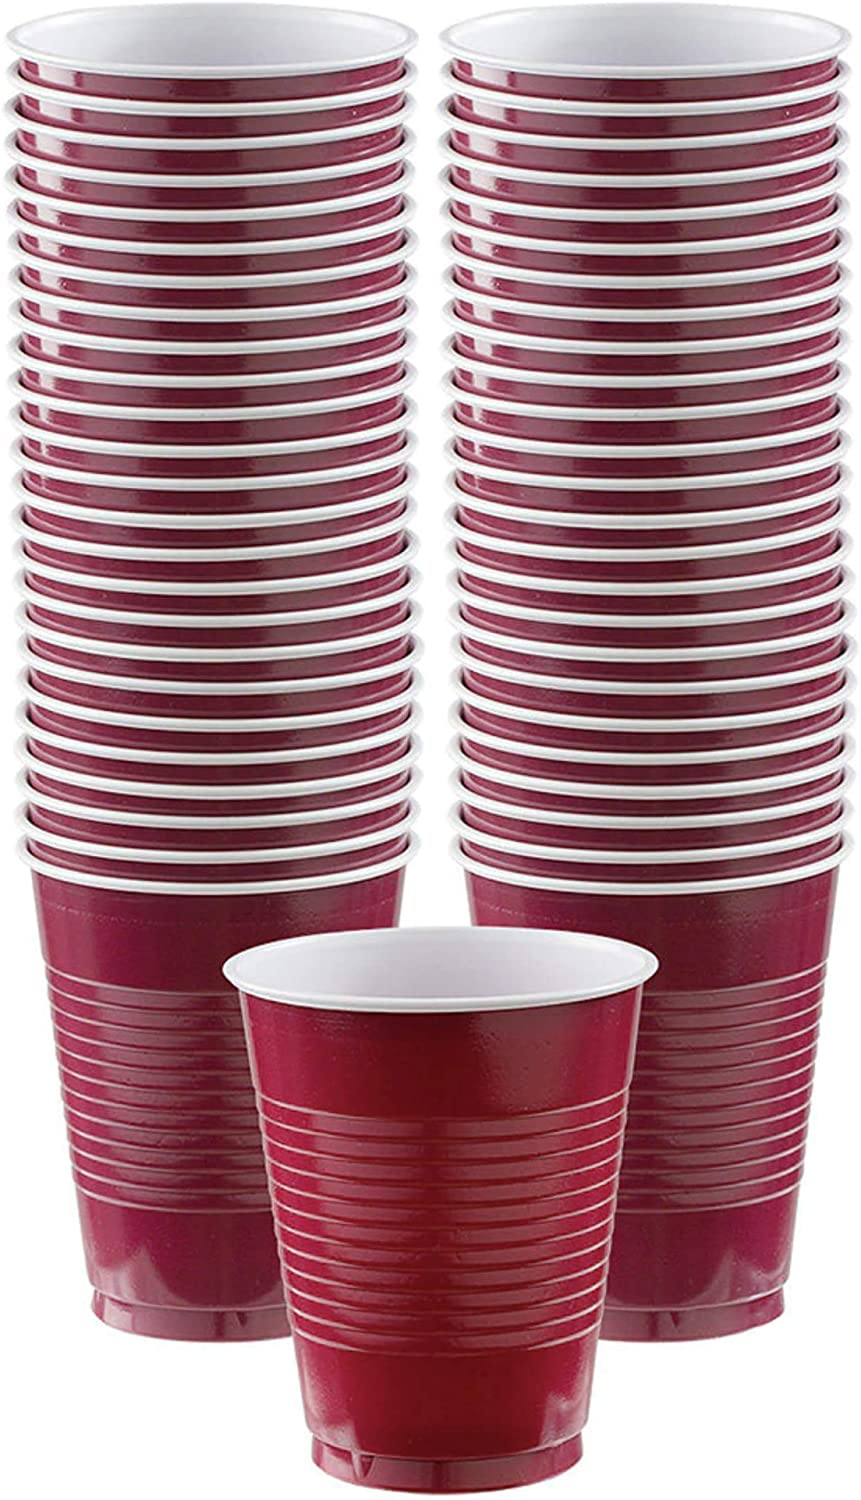 Amscan Durable Plastic Cups, 50 pieces, Berry